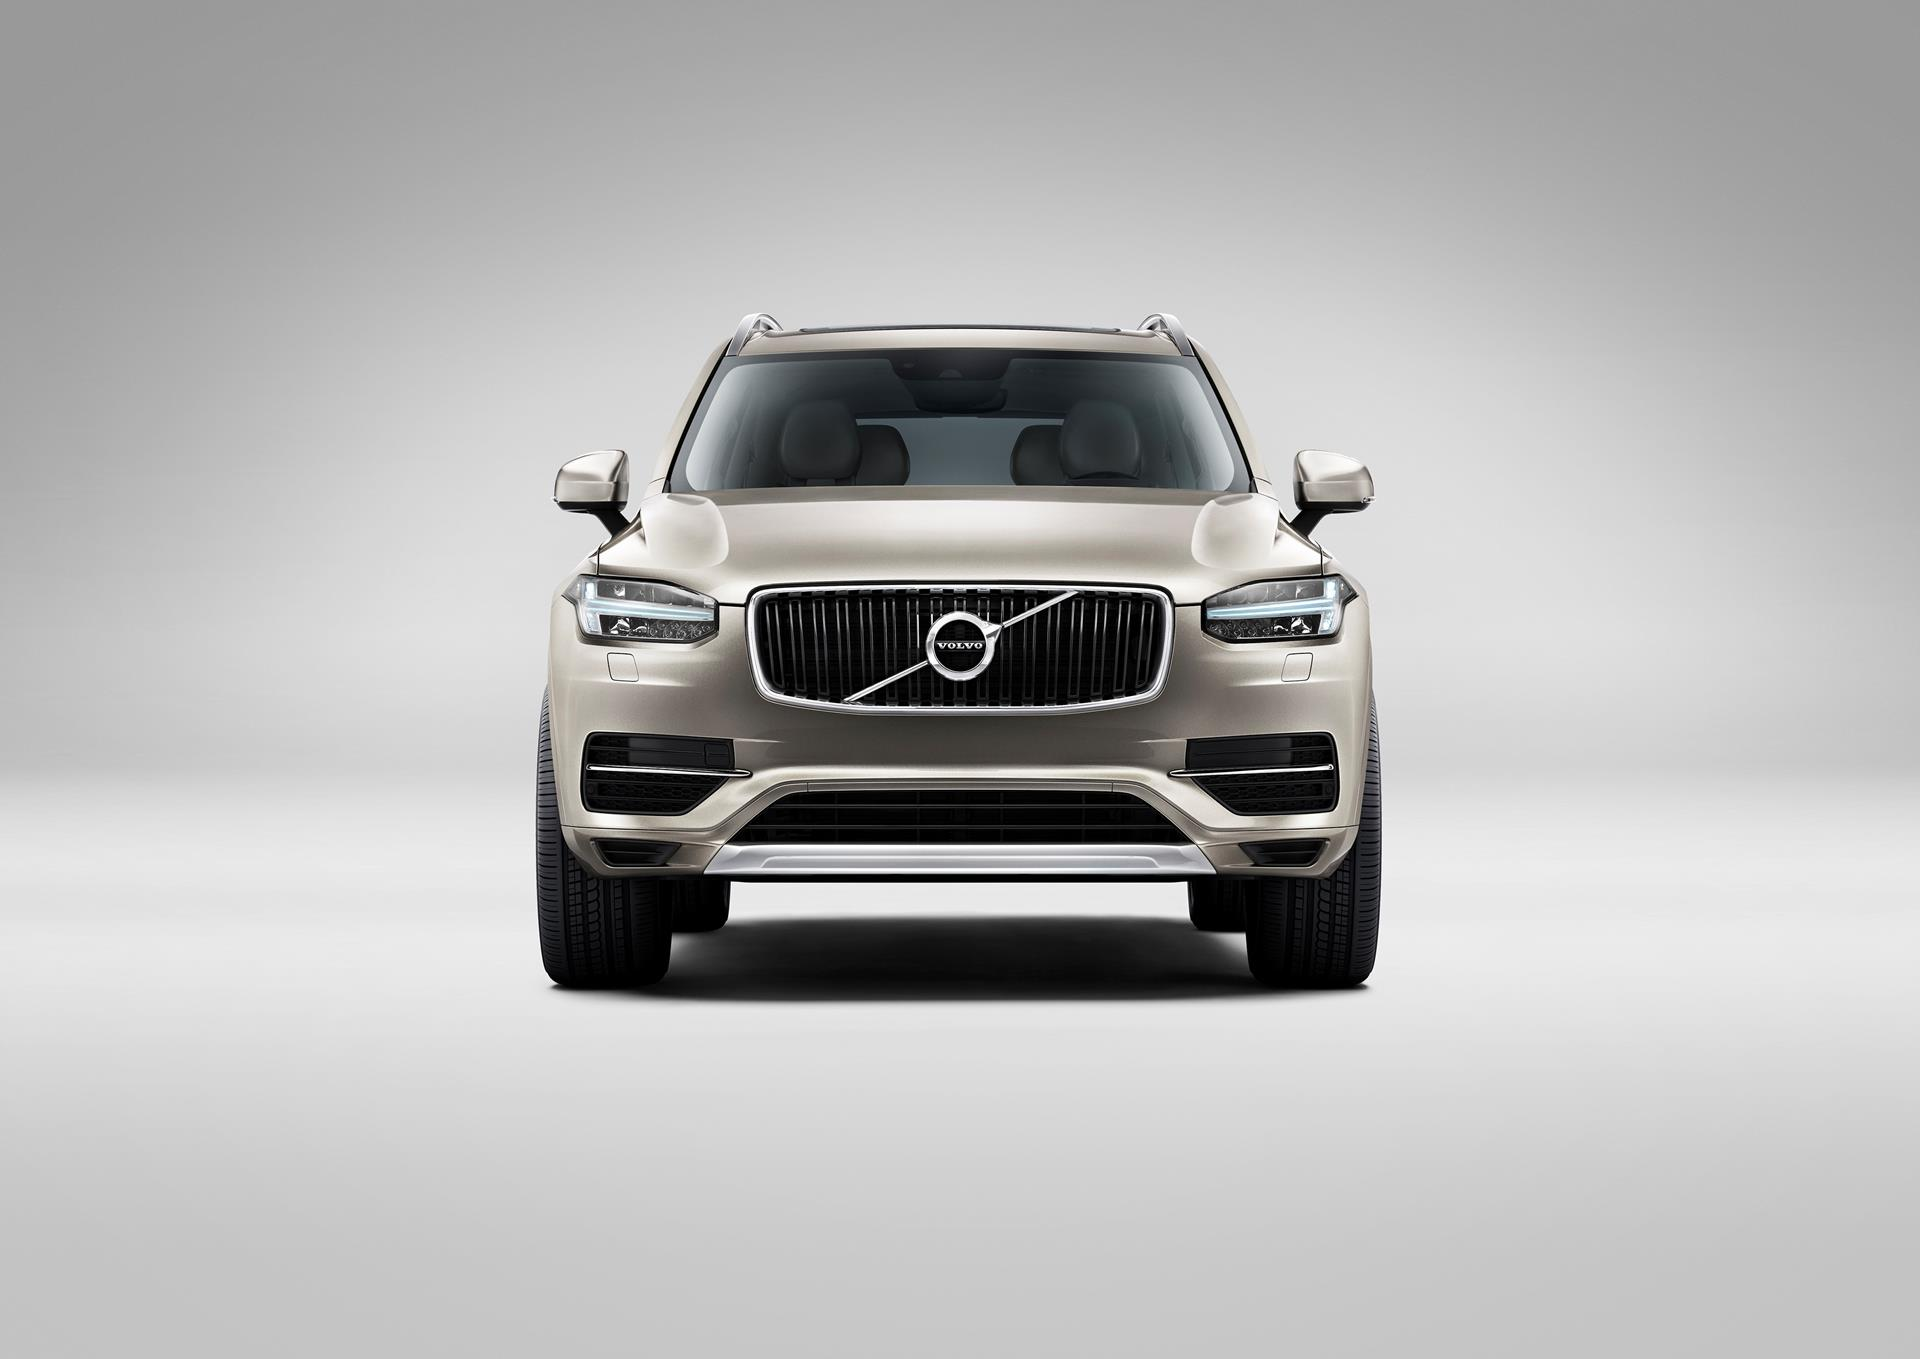 2015 Volvo Xc90 Technical Specifications And Data Engine